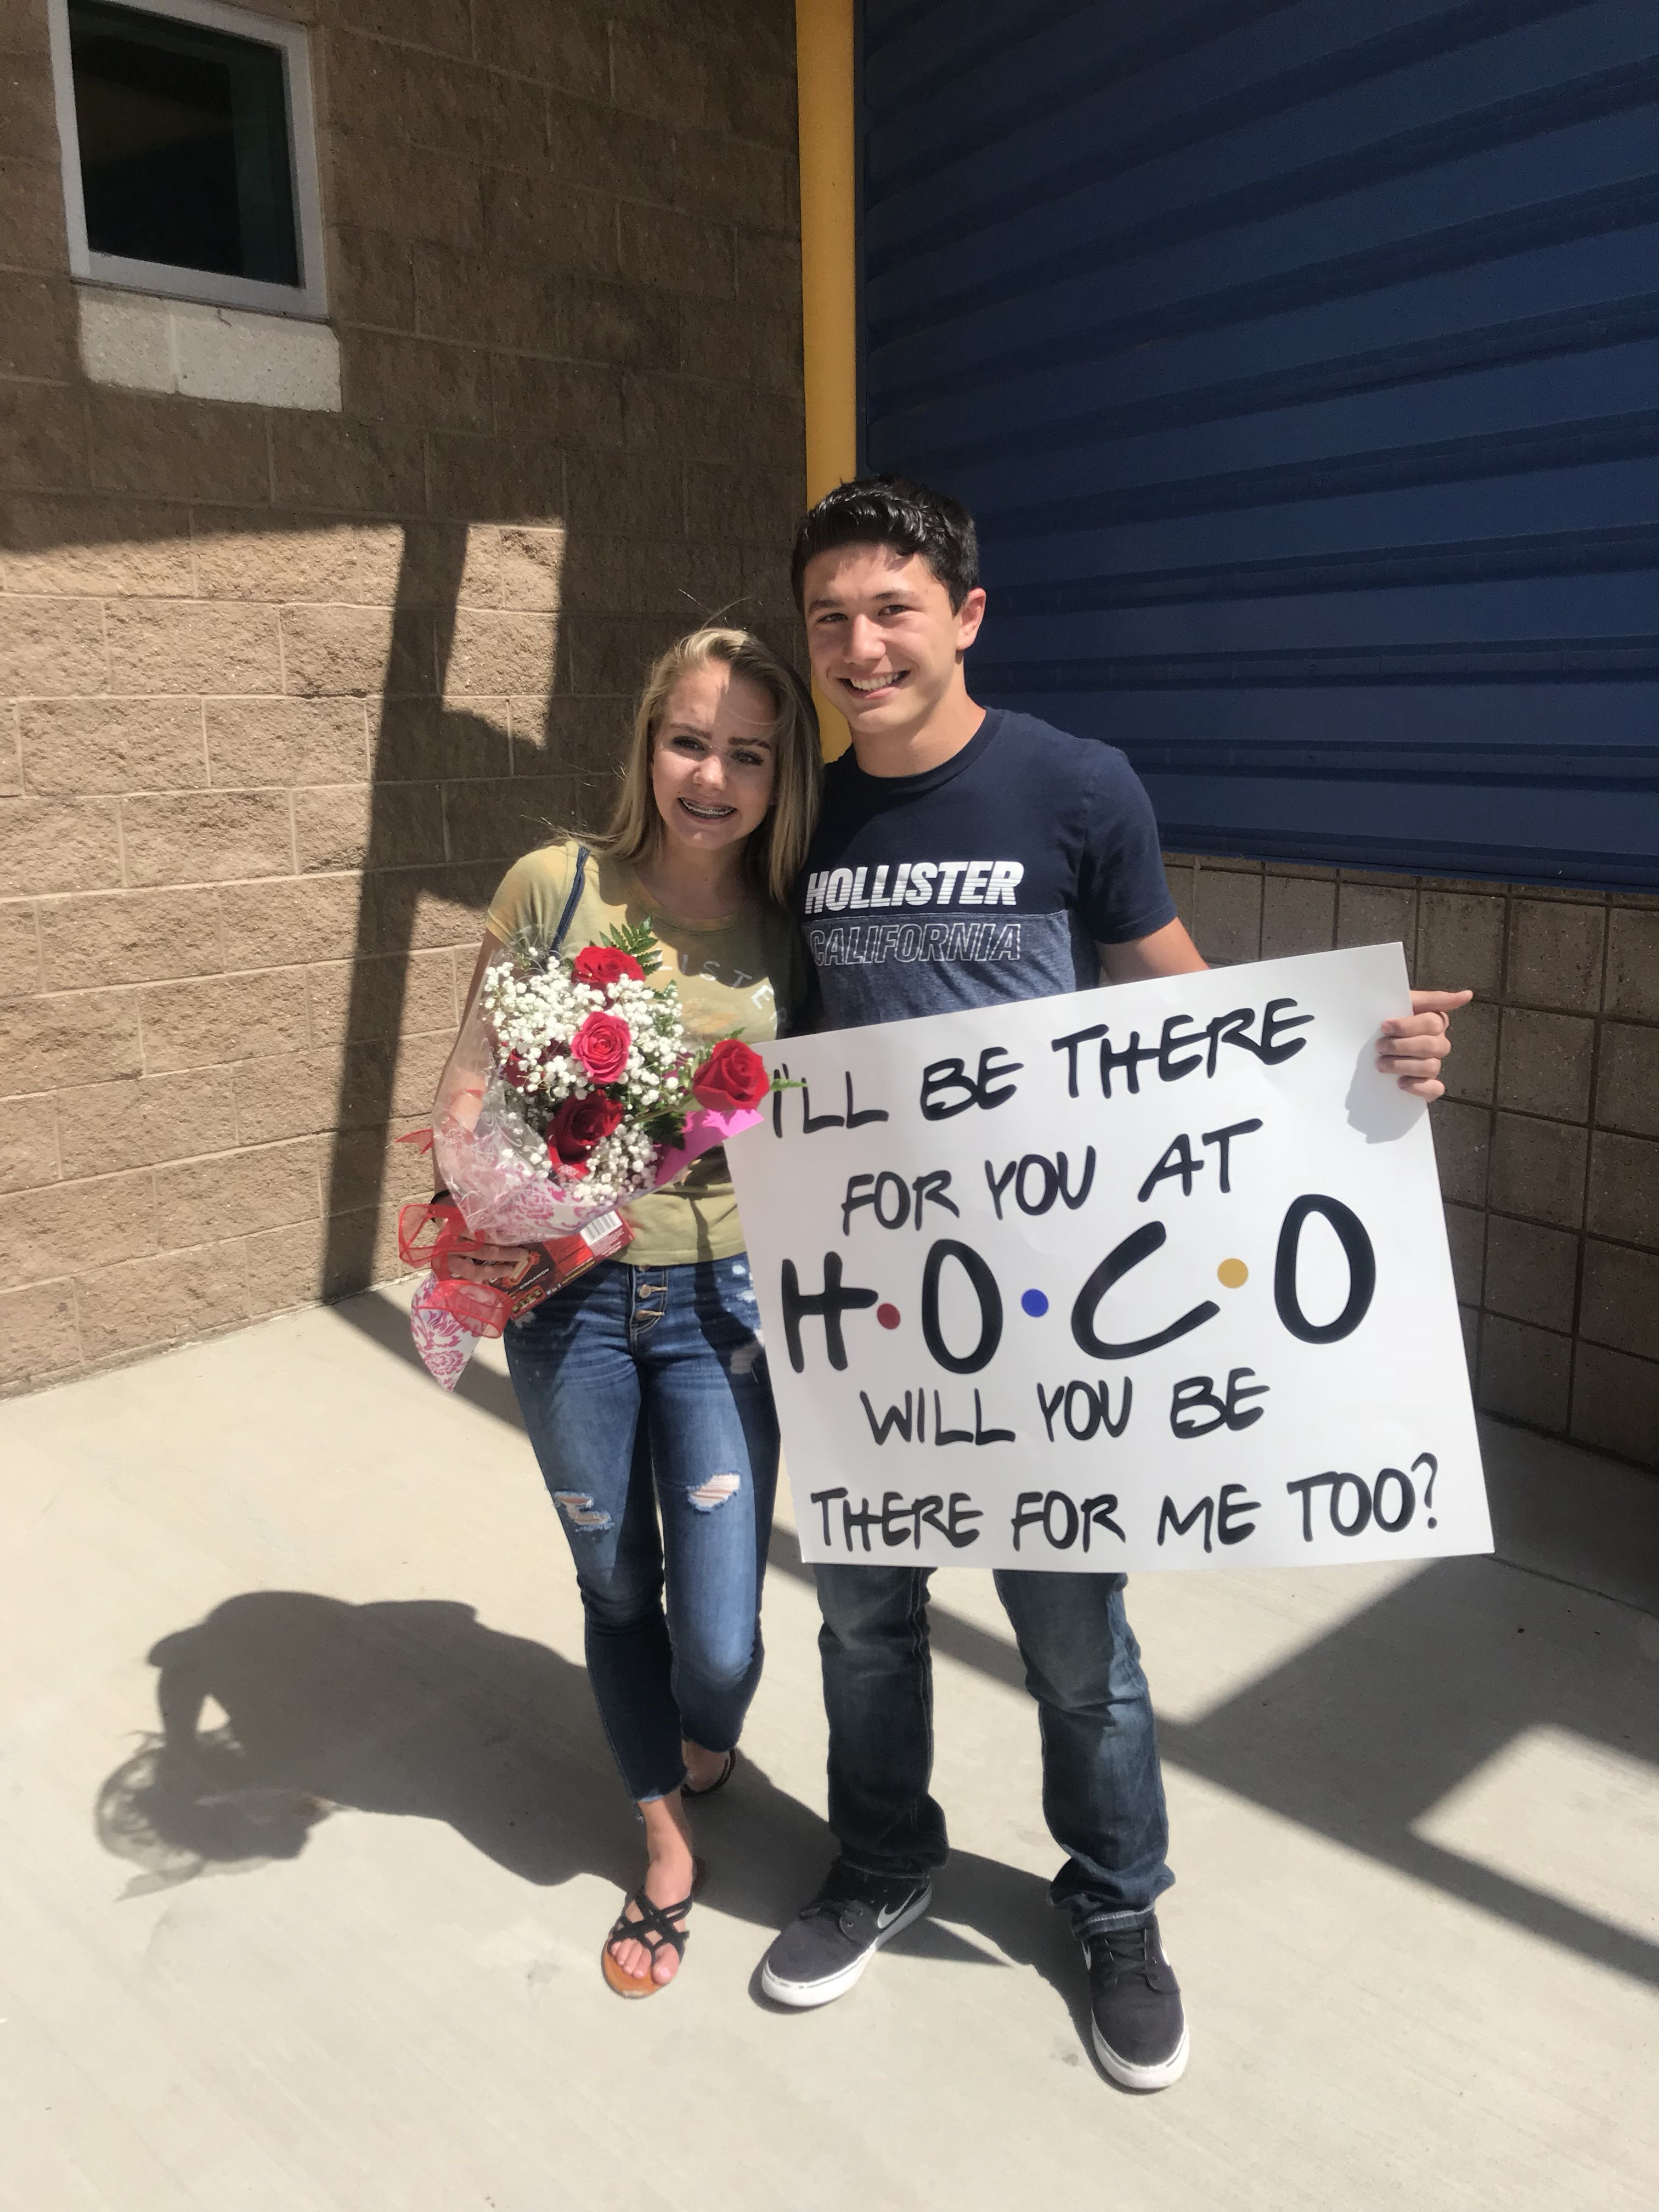 Friends TV homecoming proposal #singleprompictures #promproposal